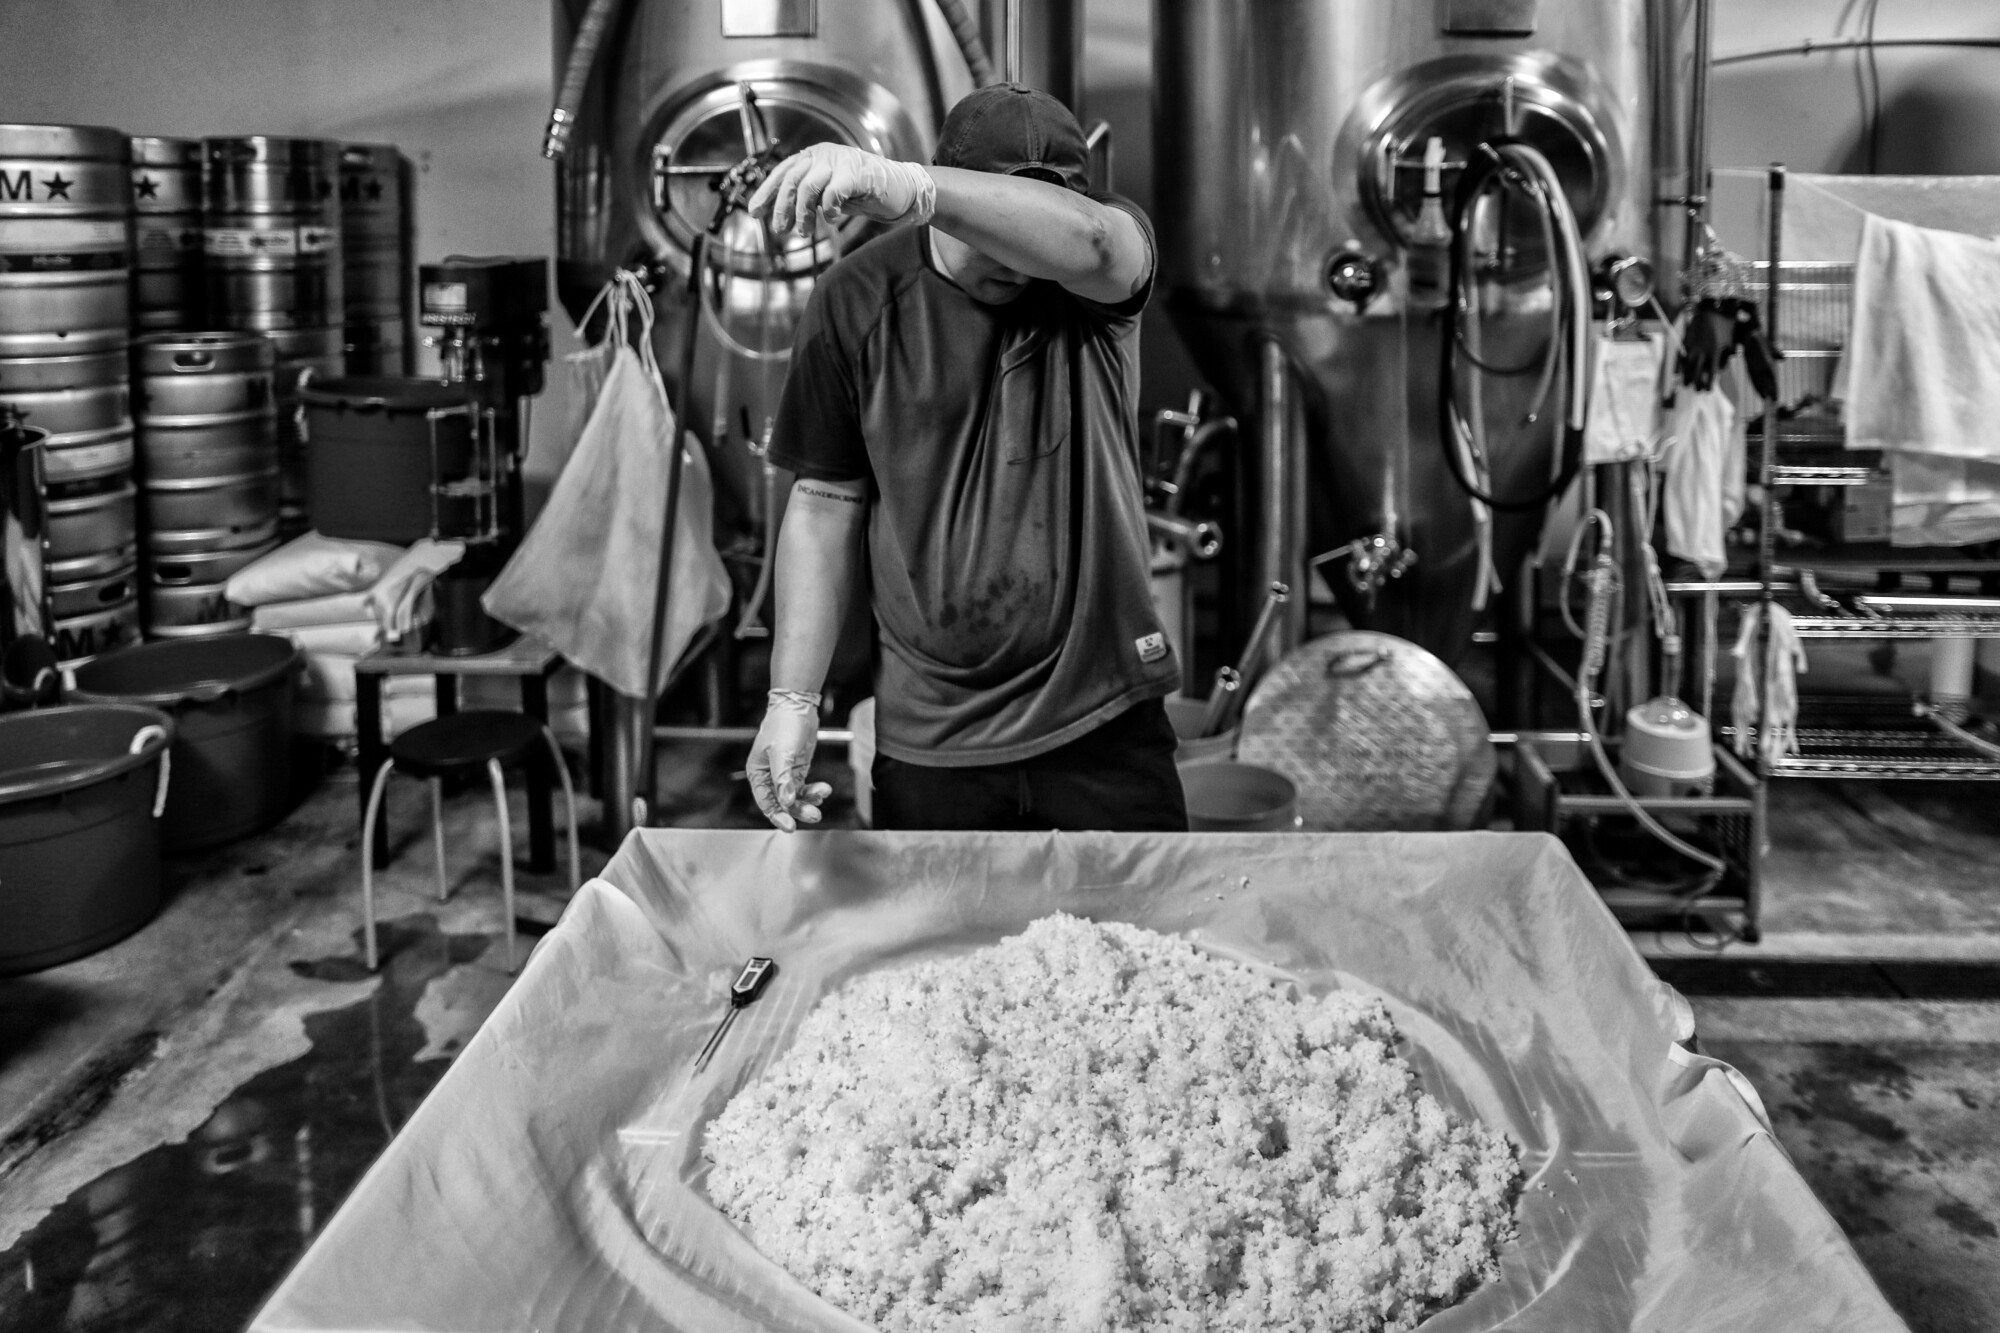 James Jin wipes sweat from his brow as he manually mixes steamed rice early in the process of brewing his craft sake.